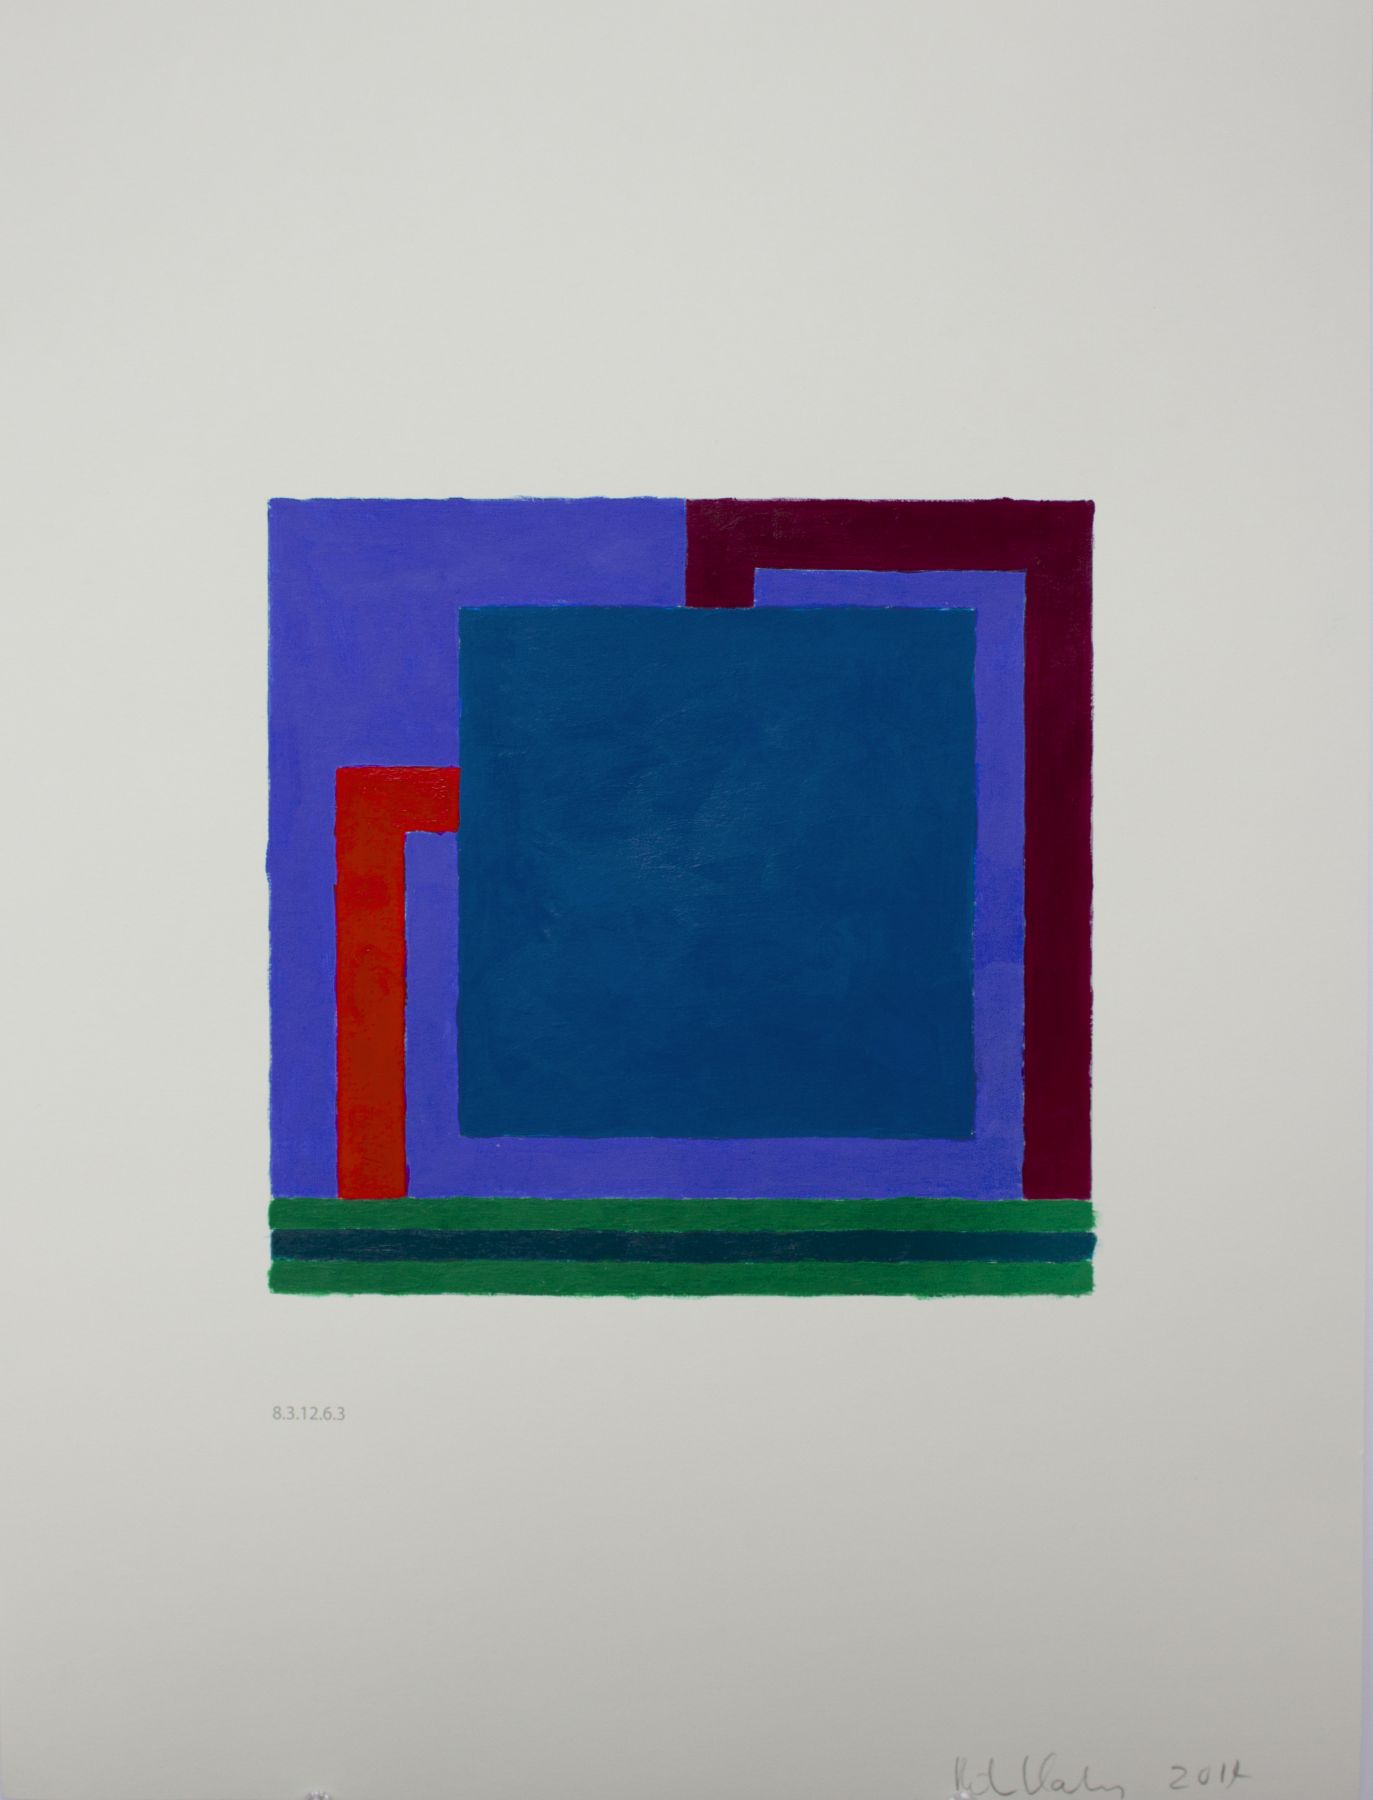 PETER HALLEY, Untitled (8.3.12.6.3), 2014